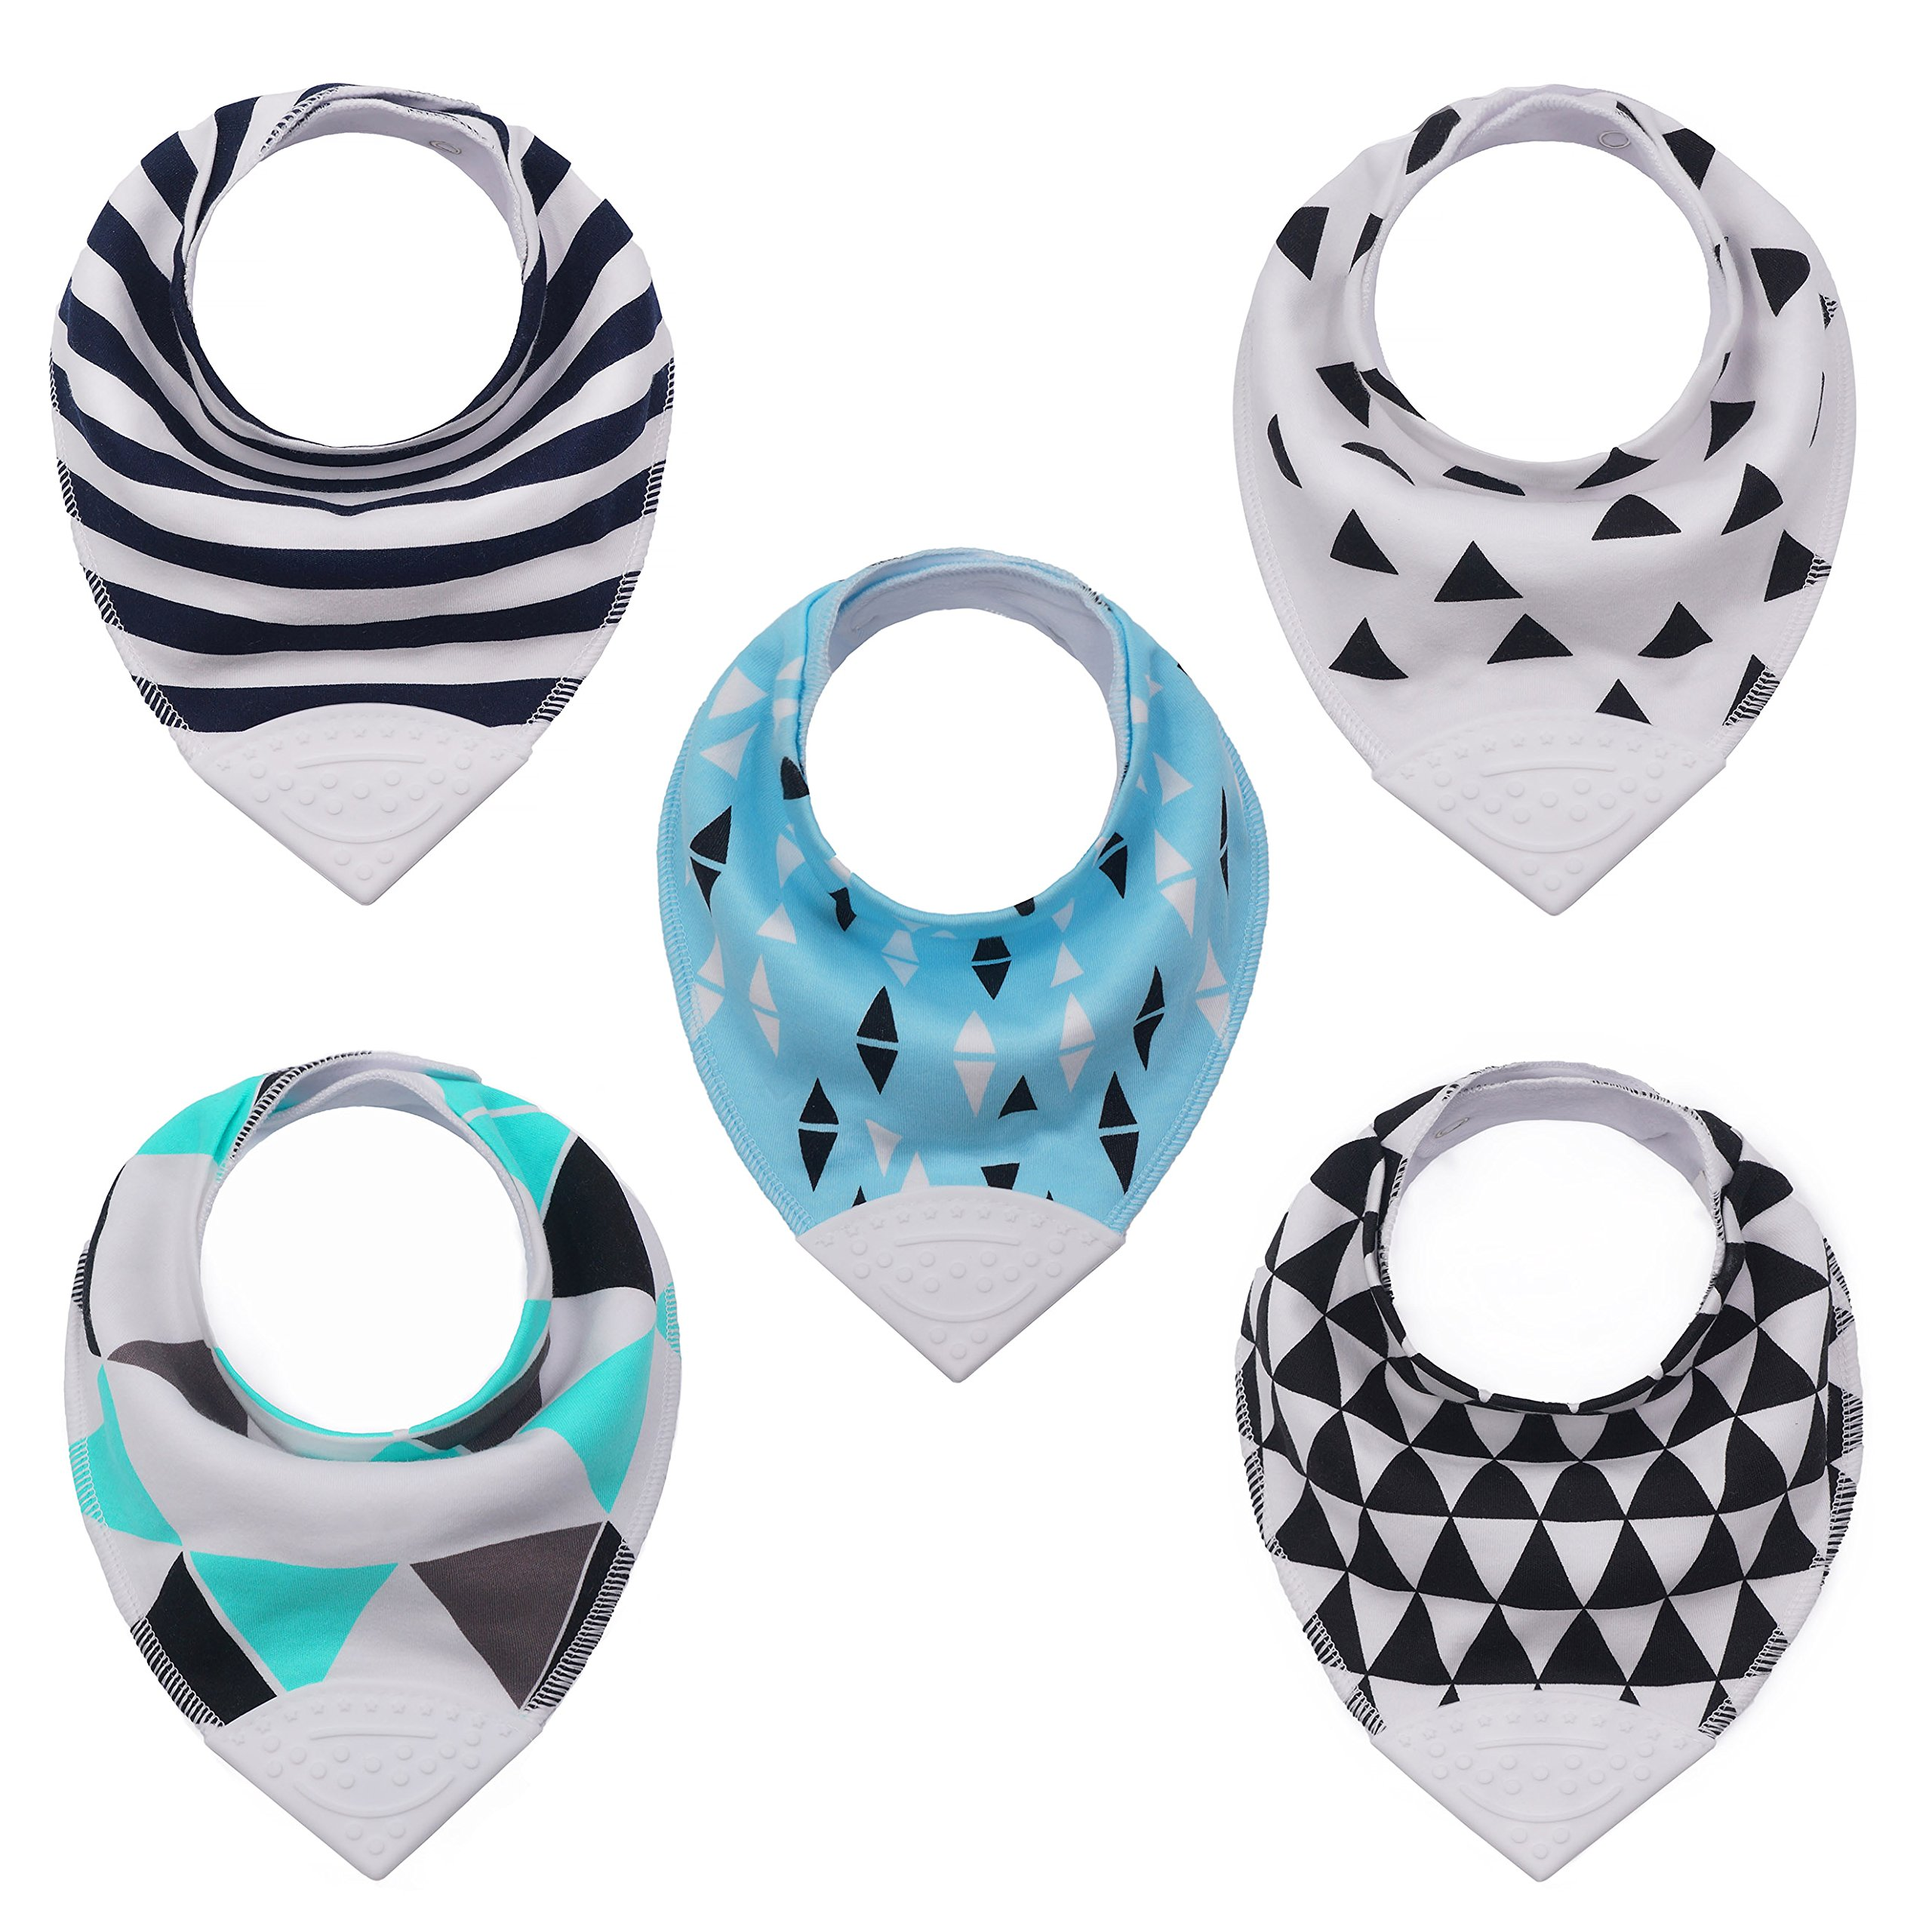 Baby & Toddler Bandana Teething Bib with BPA-Free Silicone Teether and Adjustable Snap for Boys and Girls, (5-Pack) by Giftty